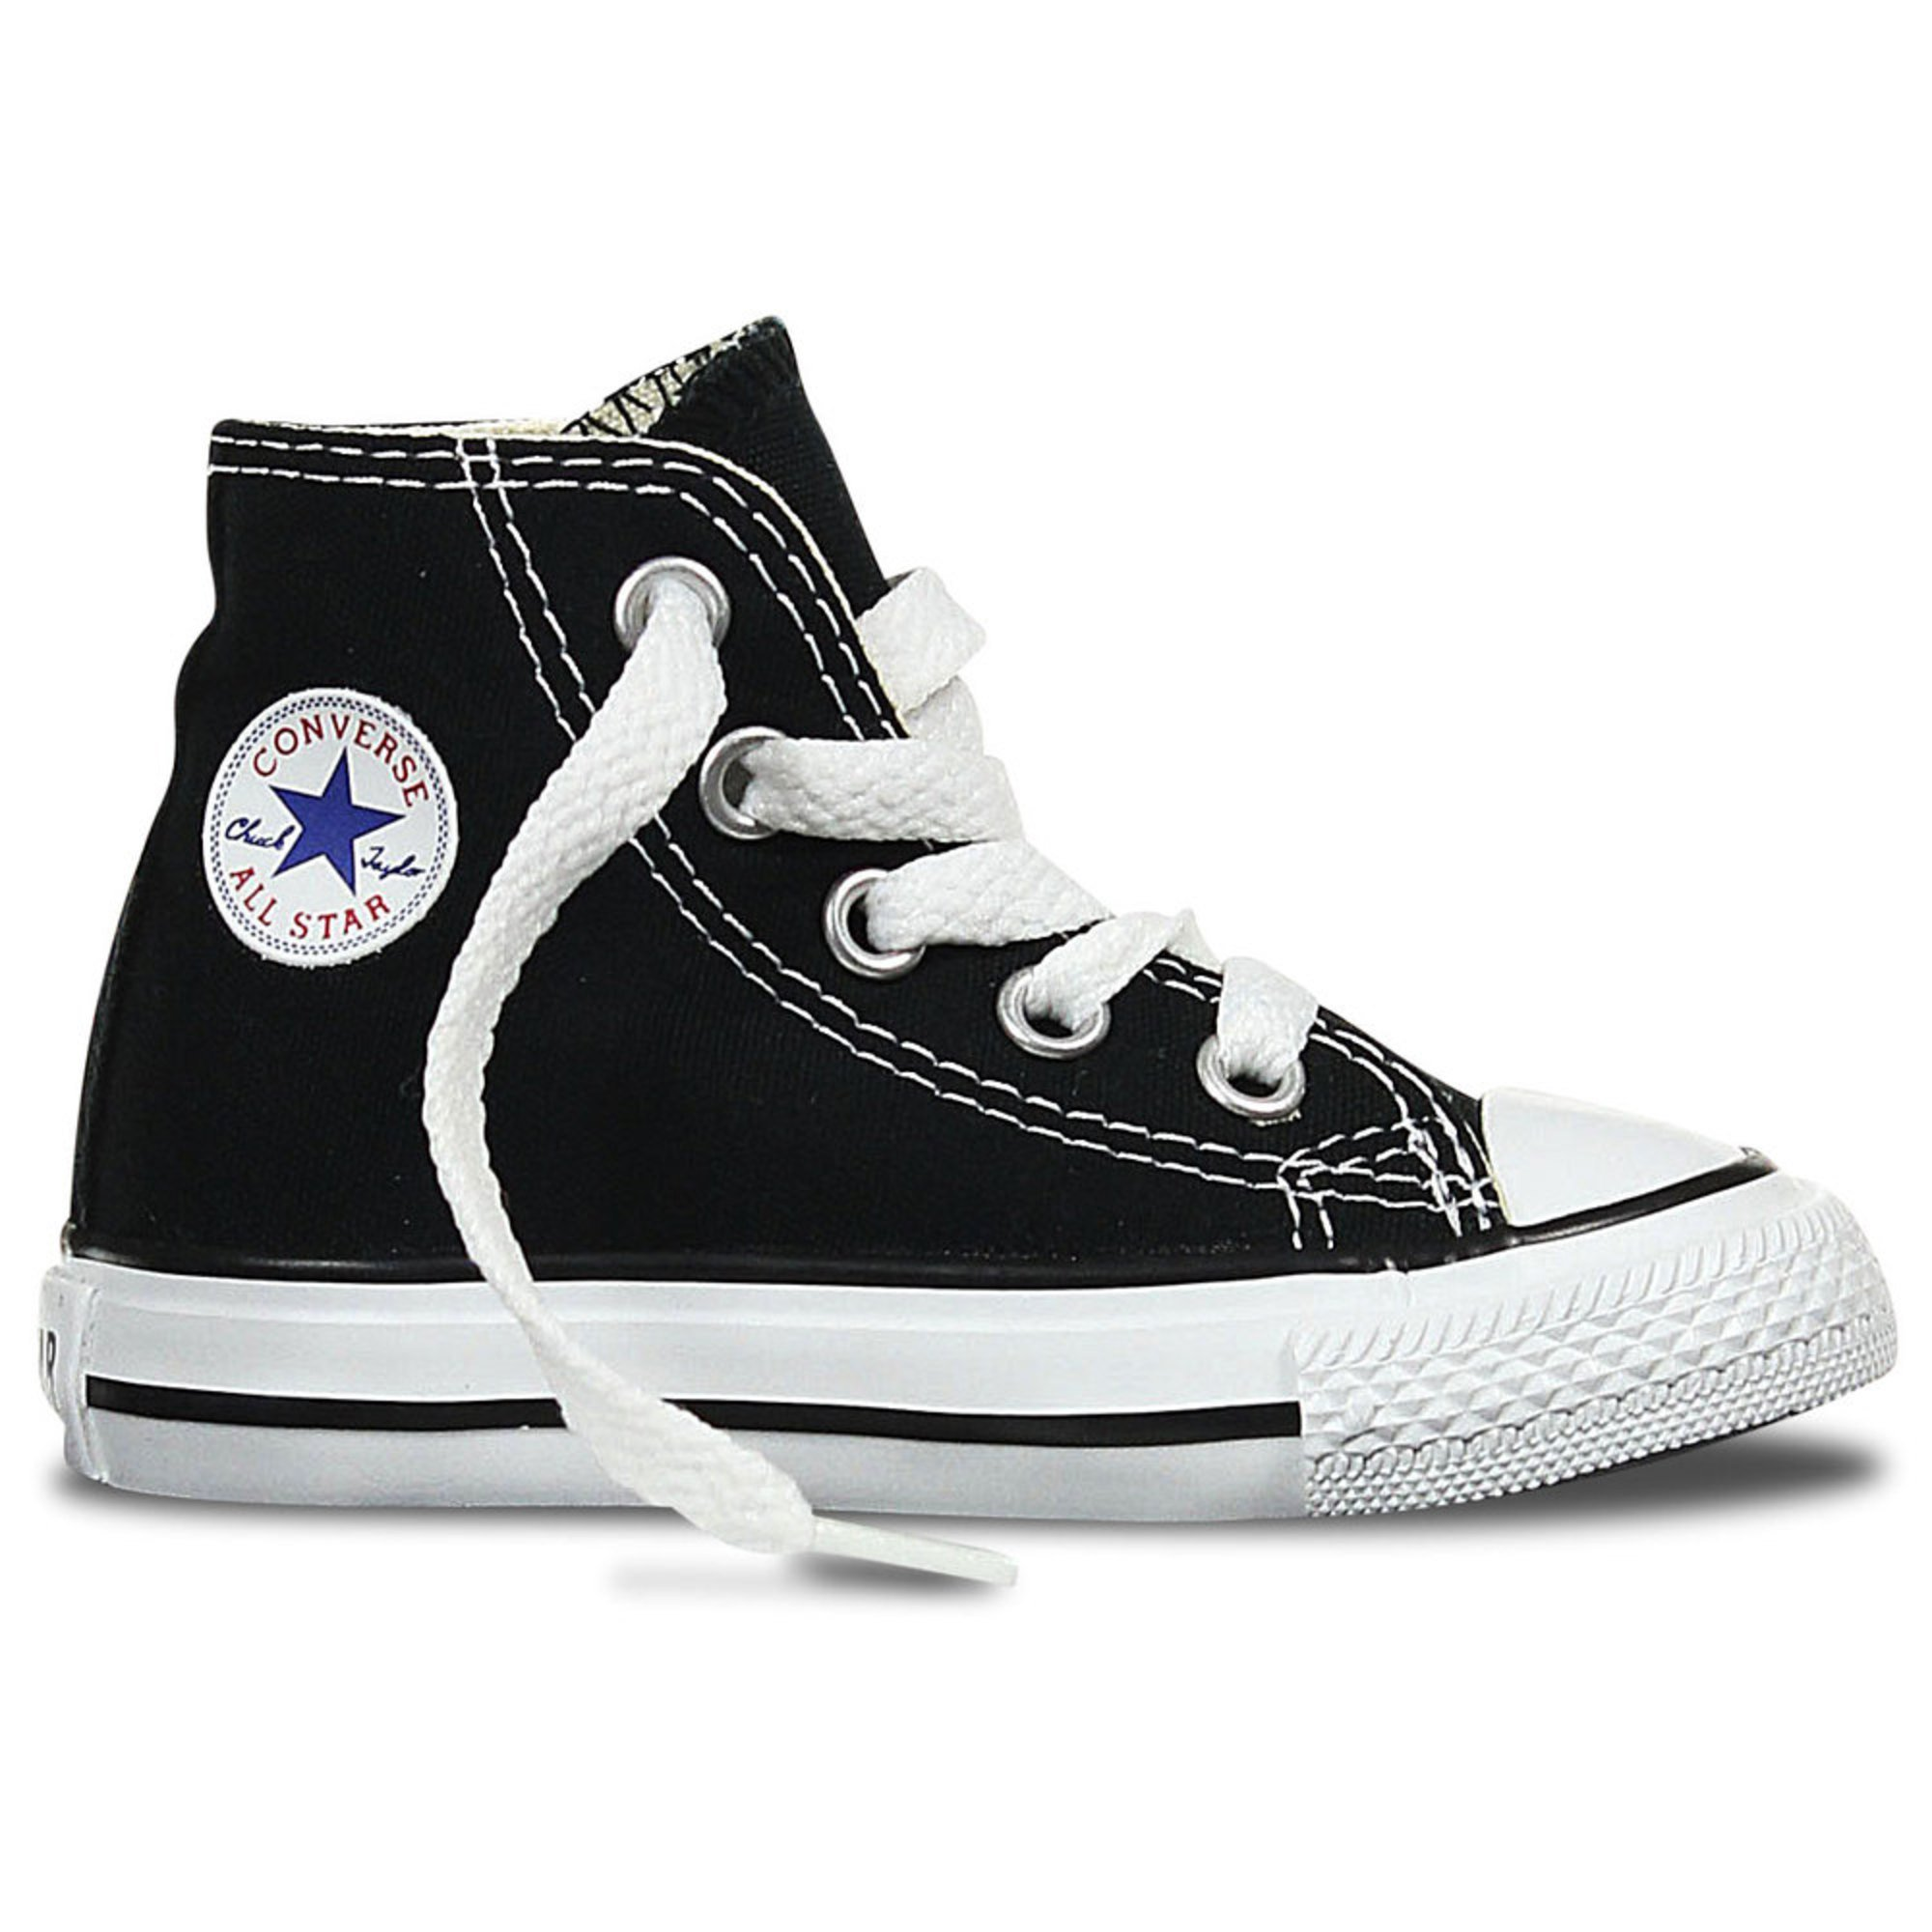 a49a8ba59eb Converse Boys Chuck Taylor All Star Hi Top Basketball Shoe (infant ...